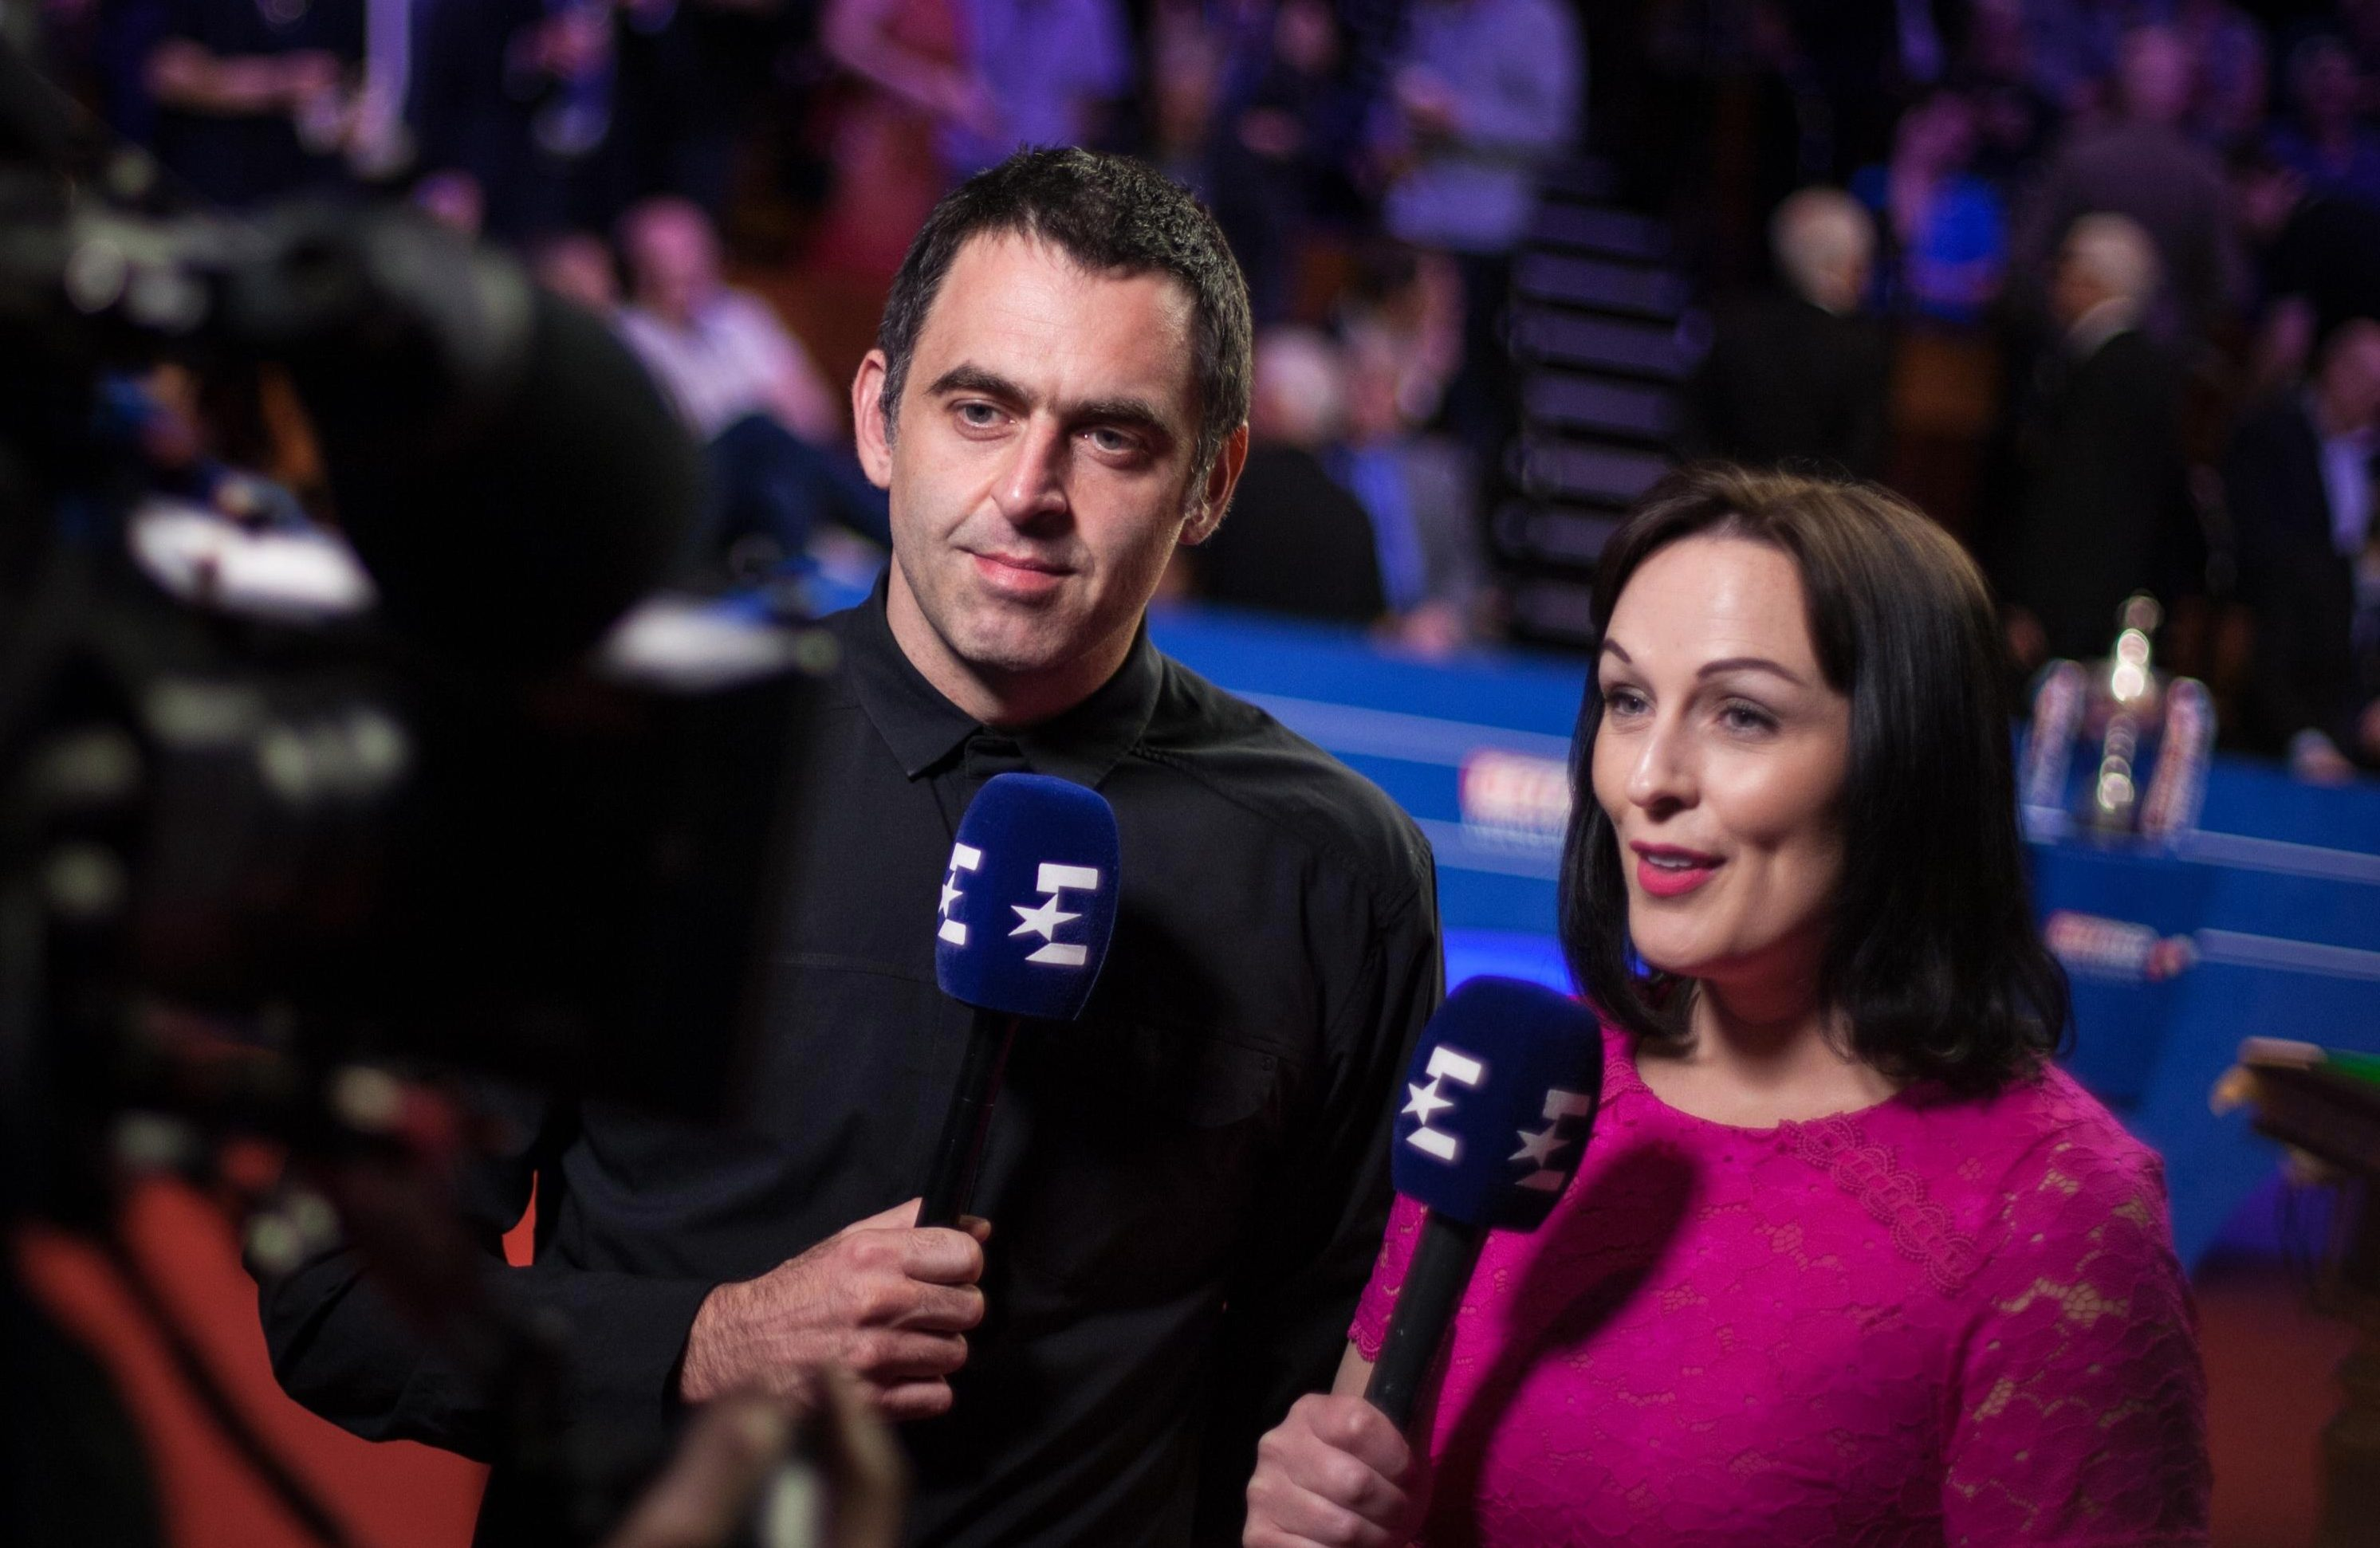 Ronnie believes female umpires could be better off sticking to female sports as they understand each other